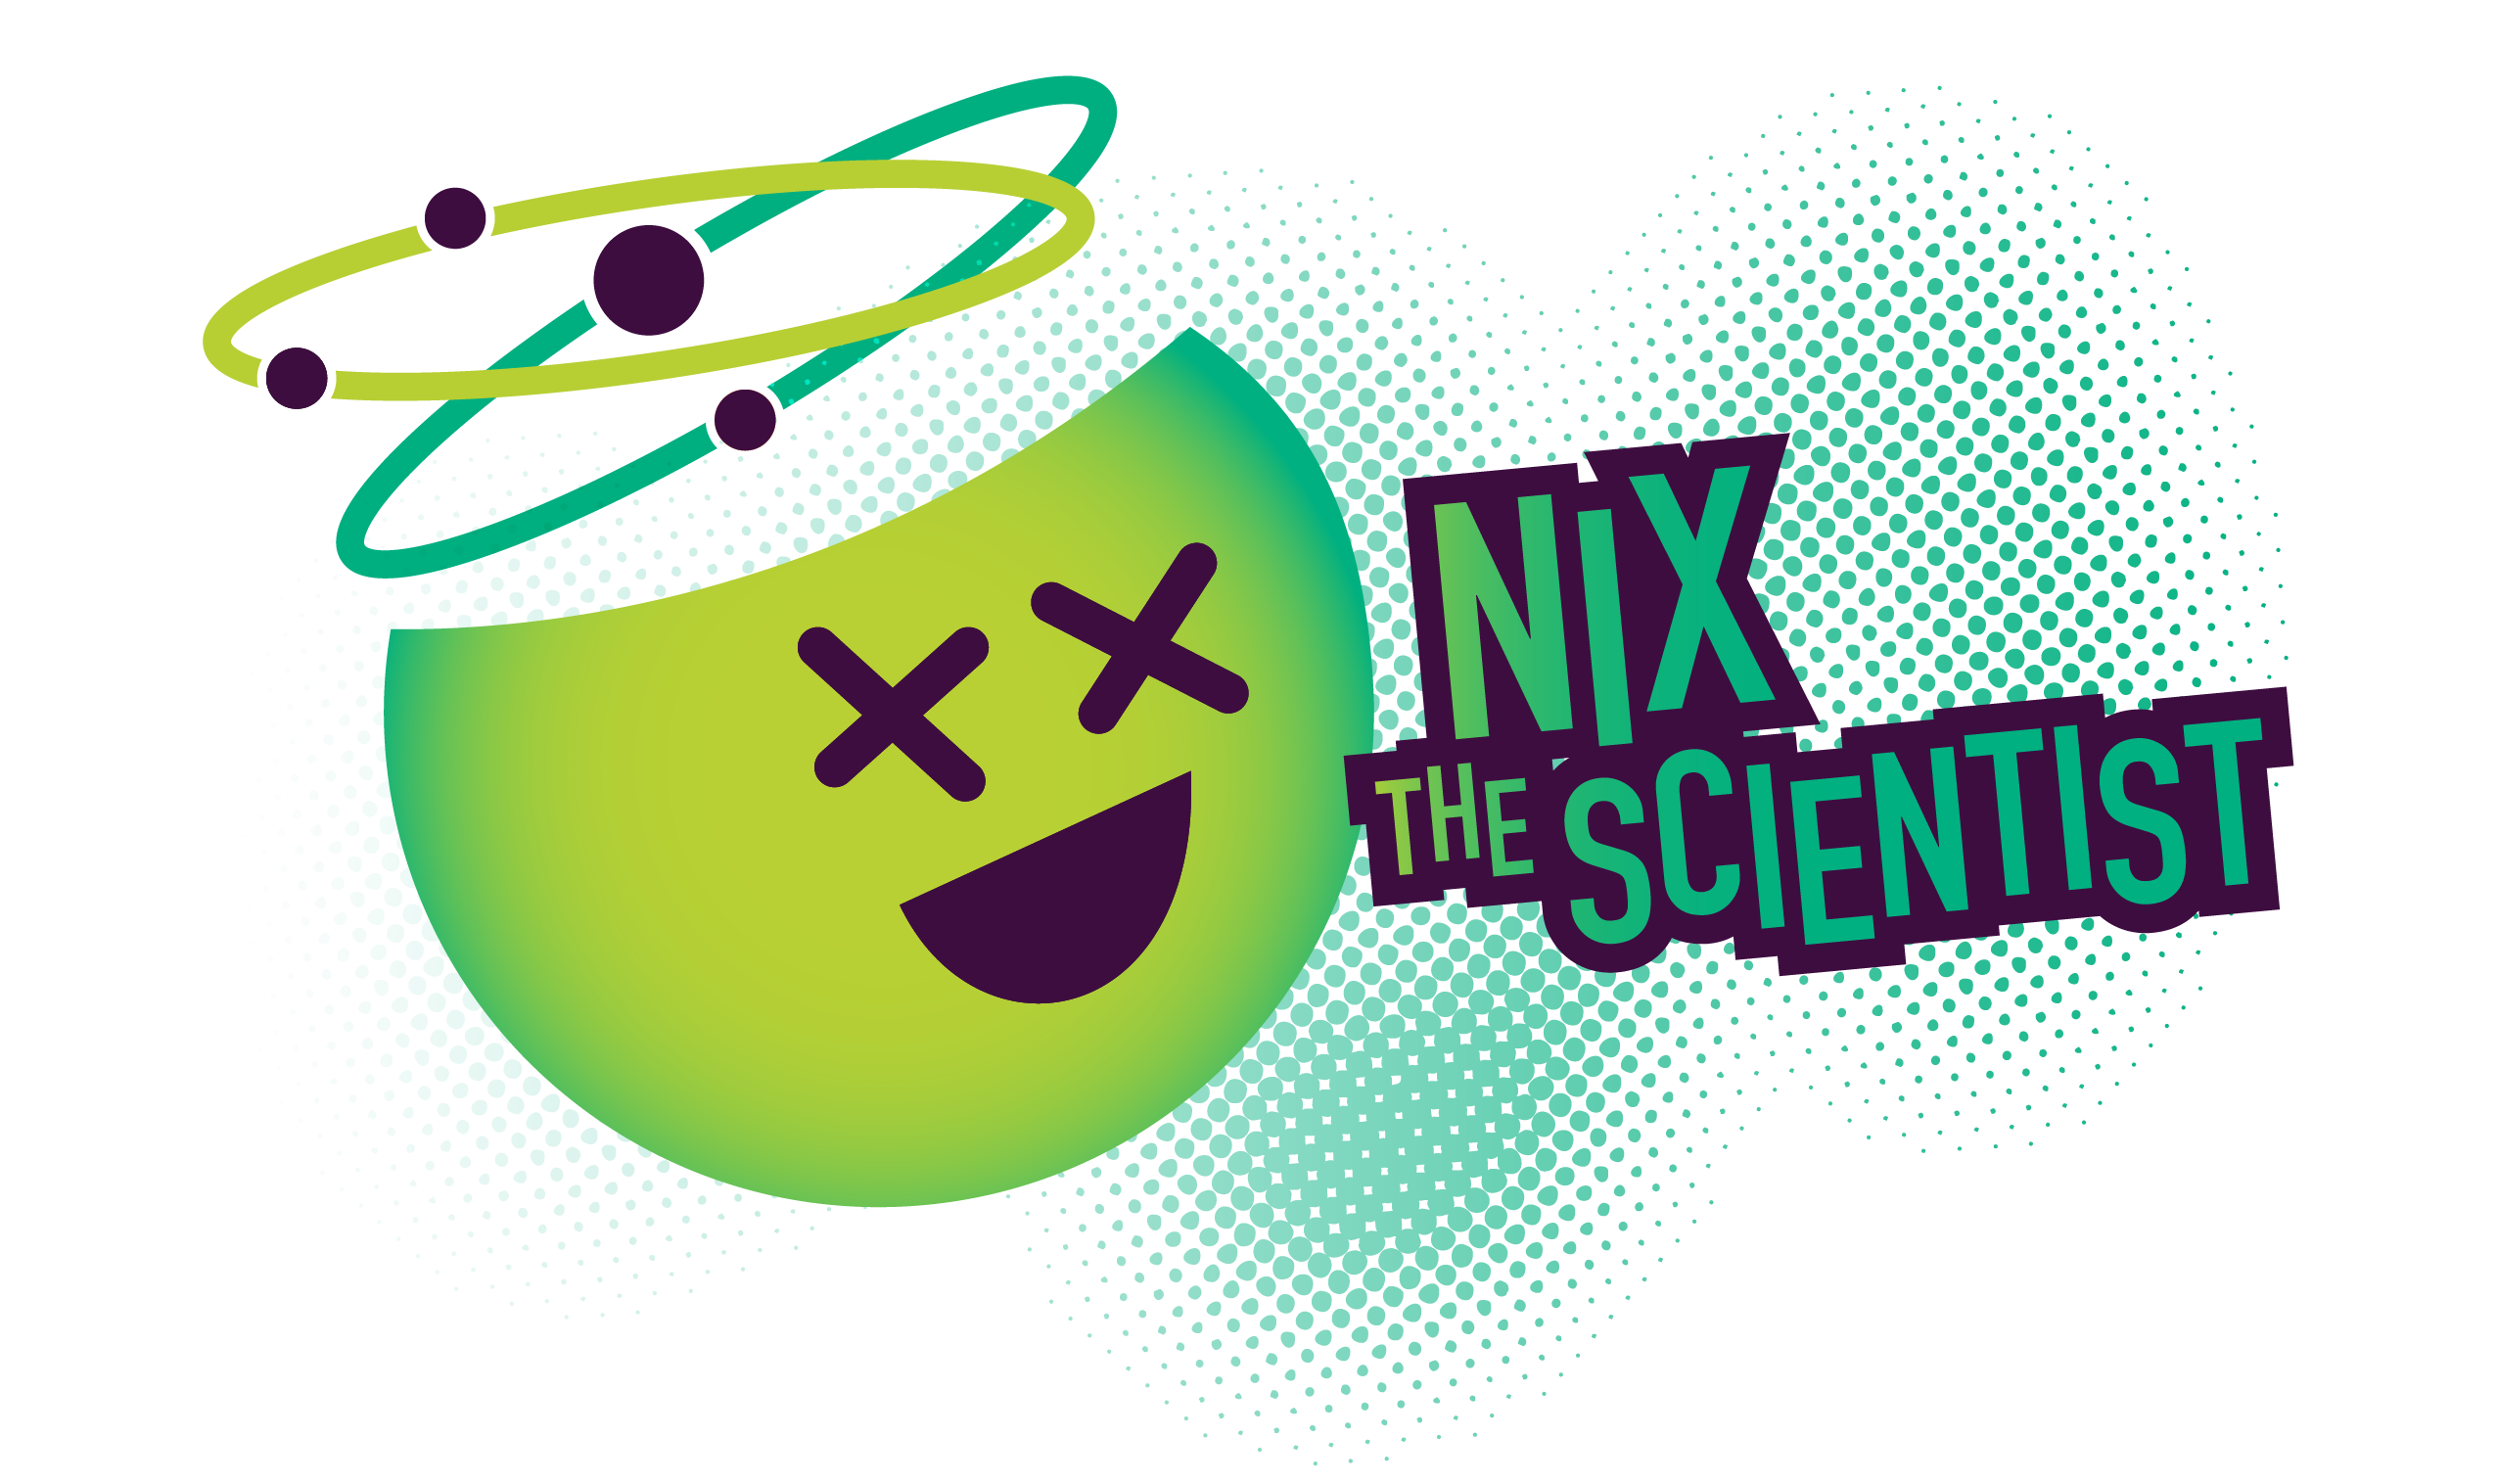 Nix the Scientist